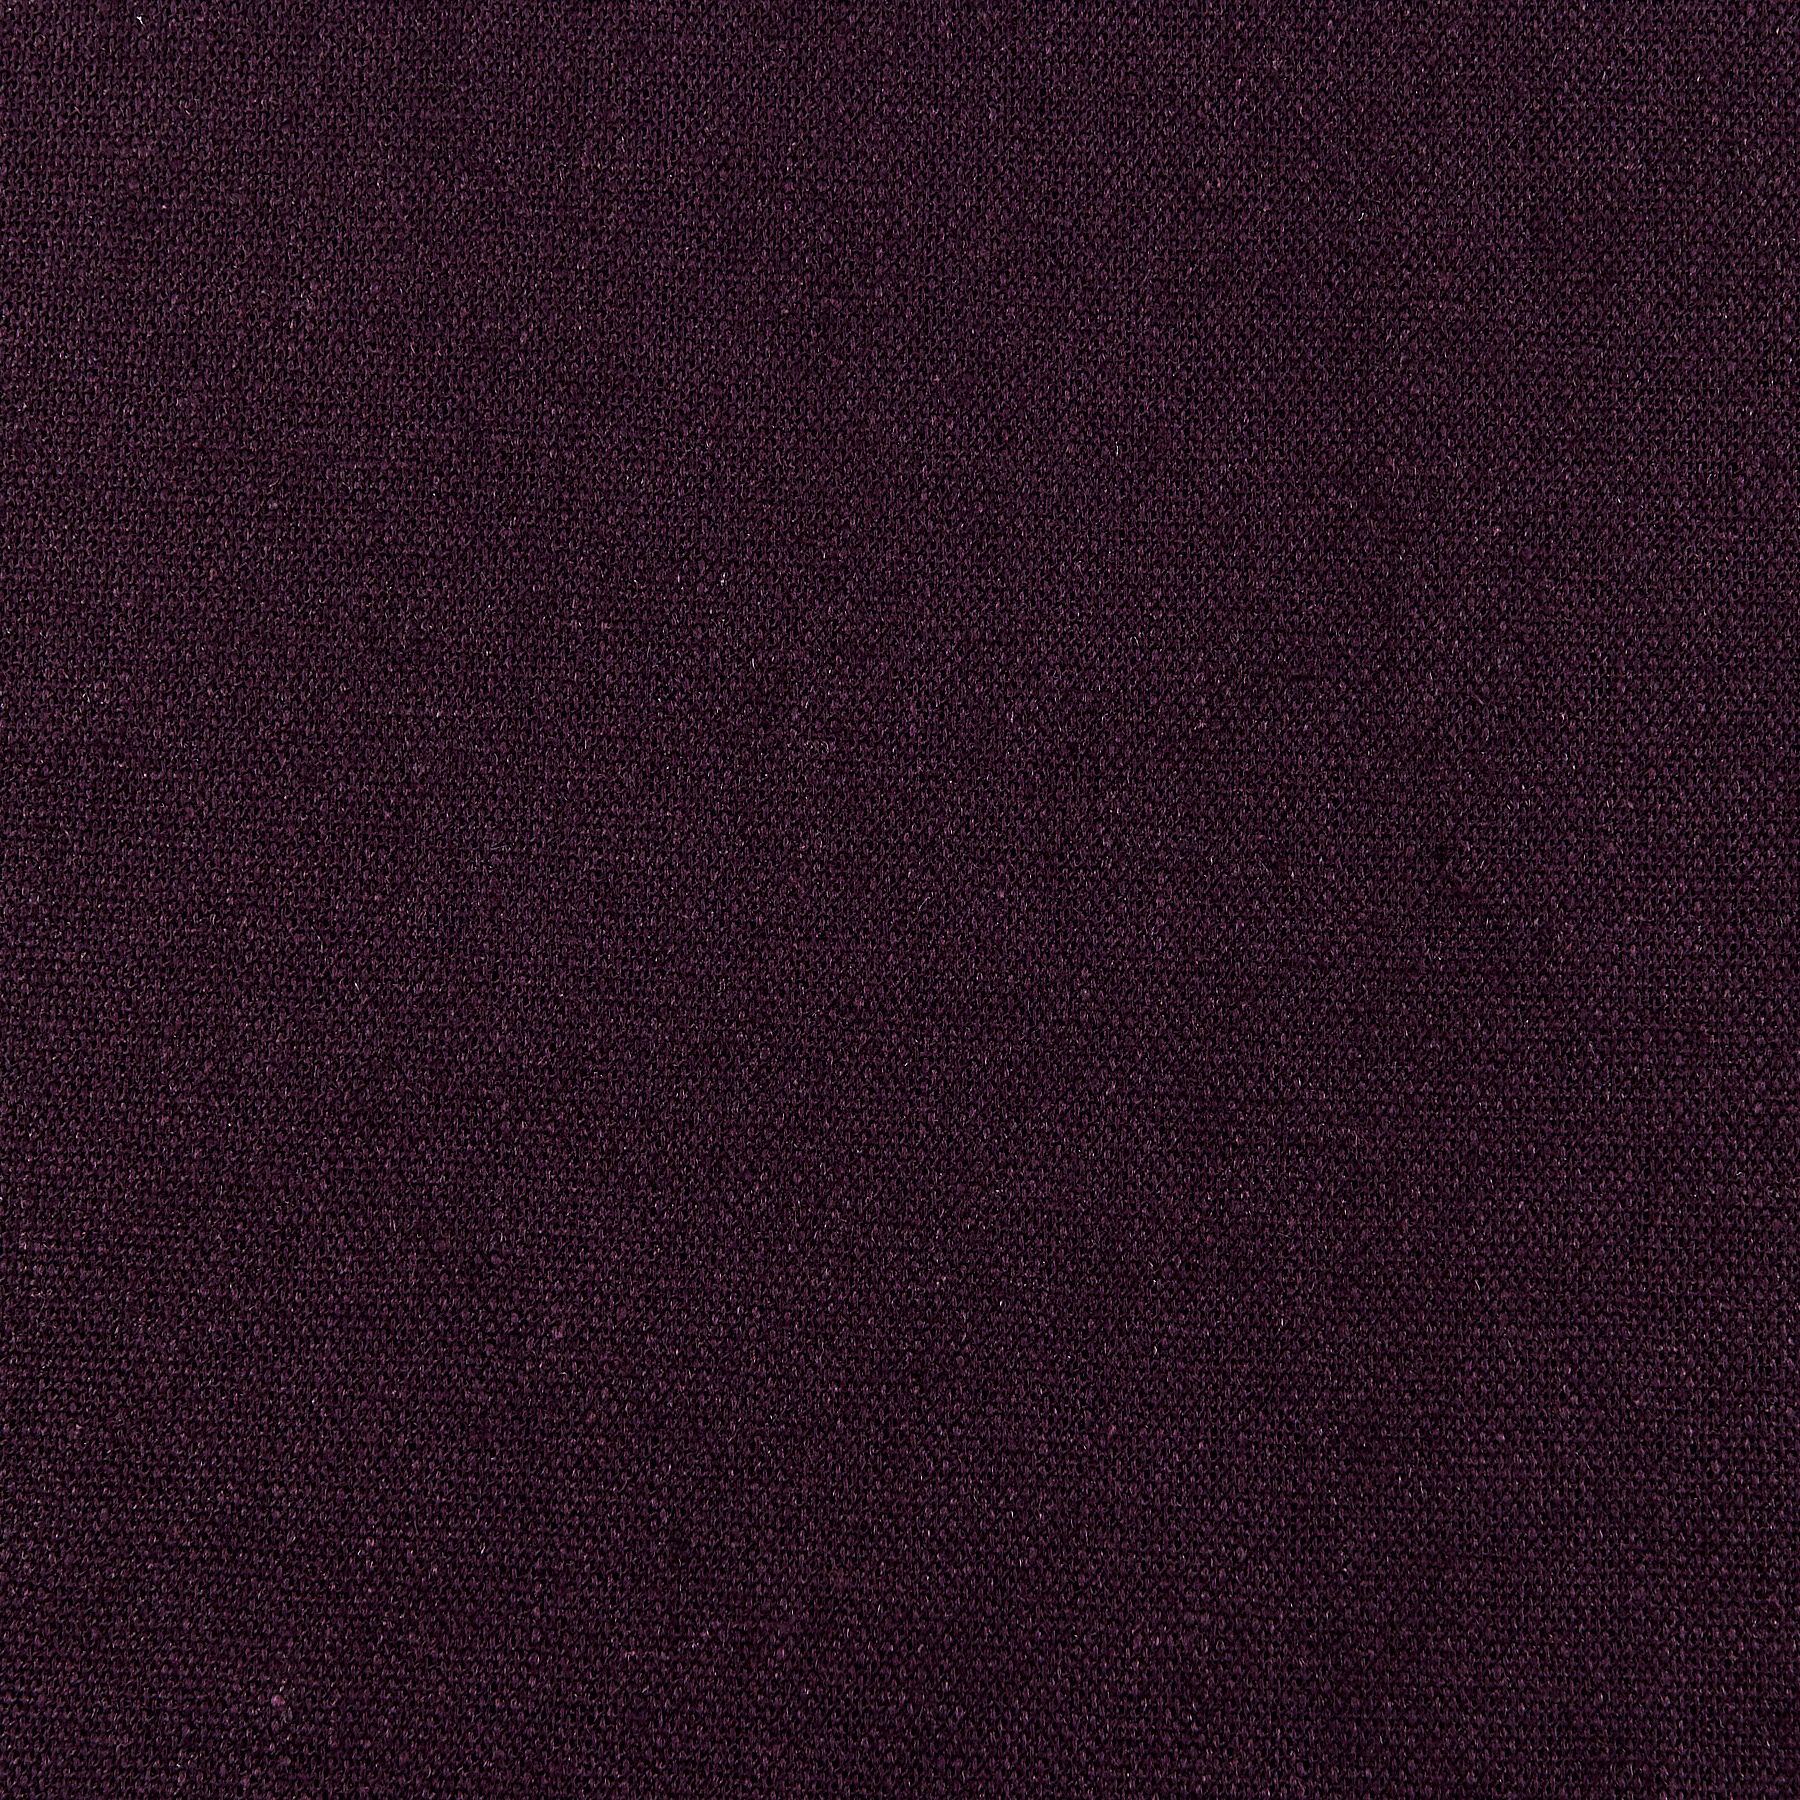 Kaufman Brussels Washer Linen Blend Dark Purple Fabric